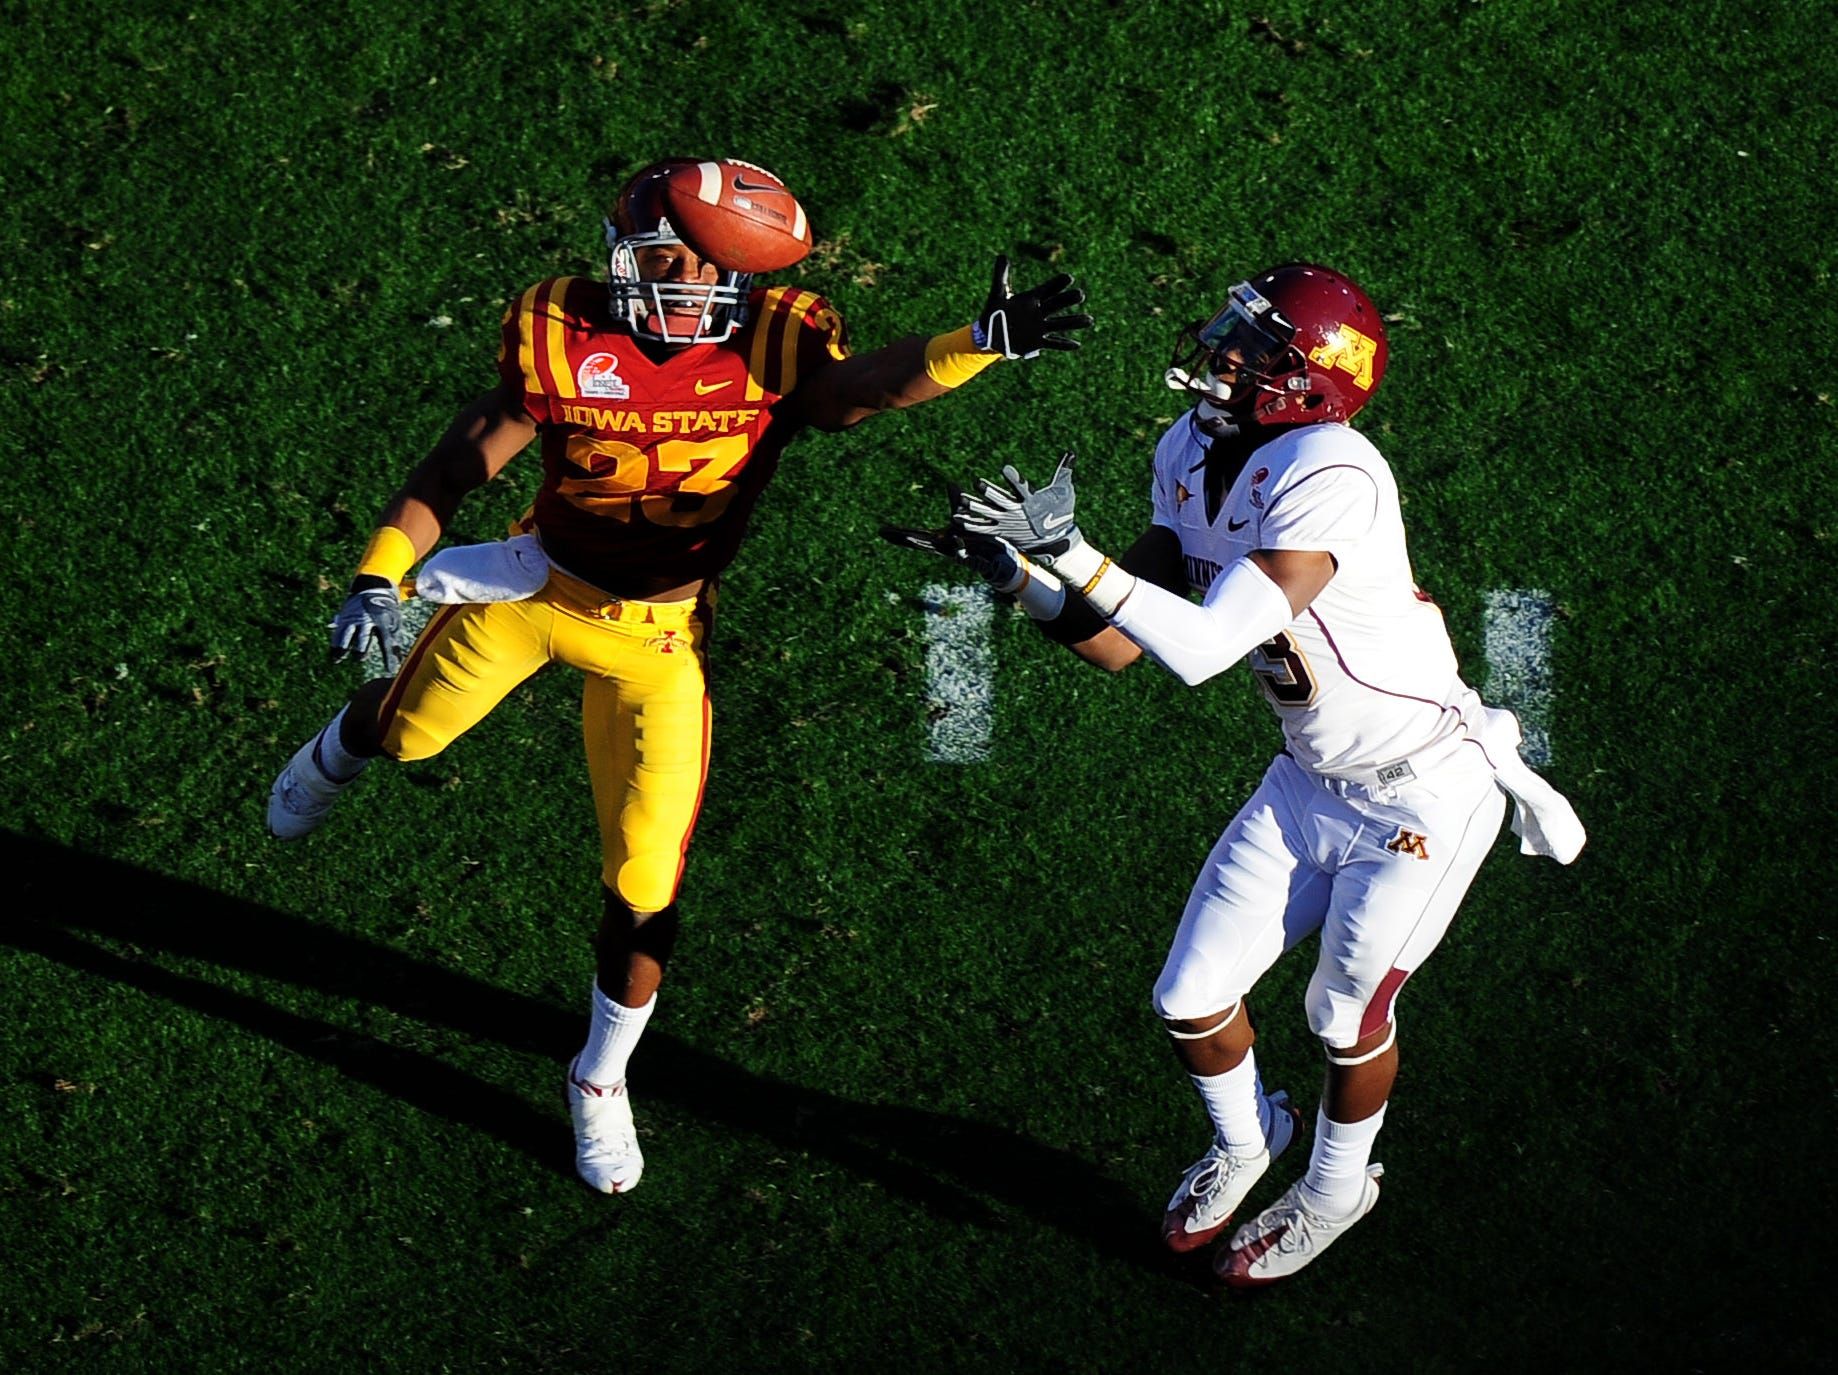 Dec 31, 2009; Tempe, AZ, USA; Minnesota Golden Gophers wide receiver (83) Da'Jon McKnight makes a catch under the defense of Iowa State Cyclones defensive back (23) Leonard Johnson in the first quarter of the 2009 Insight Bowl at Sun Devil Stadium. Mandatory Credit: Mark J. Rebilas-USA TODAY Sports